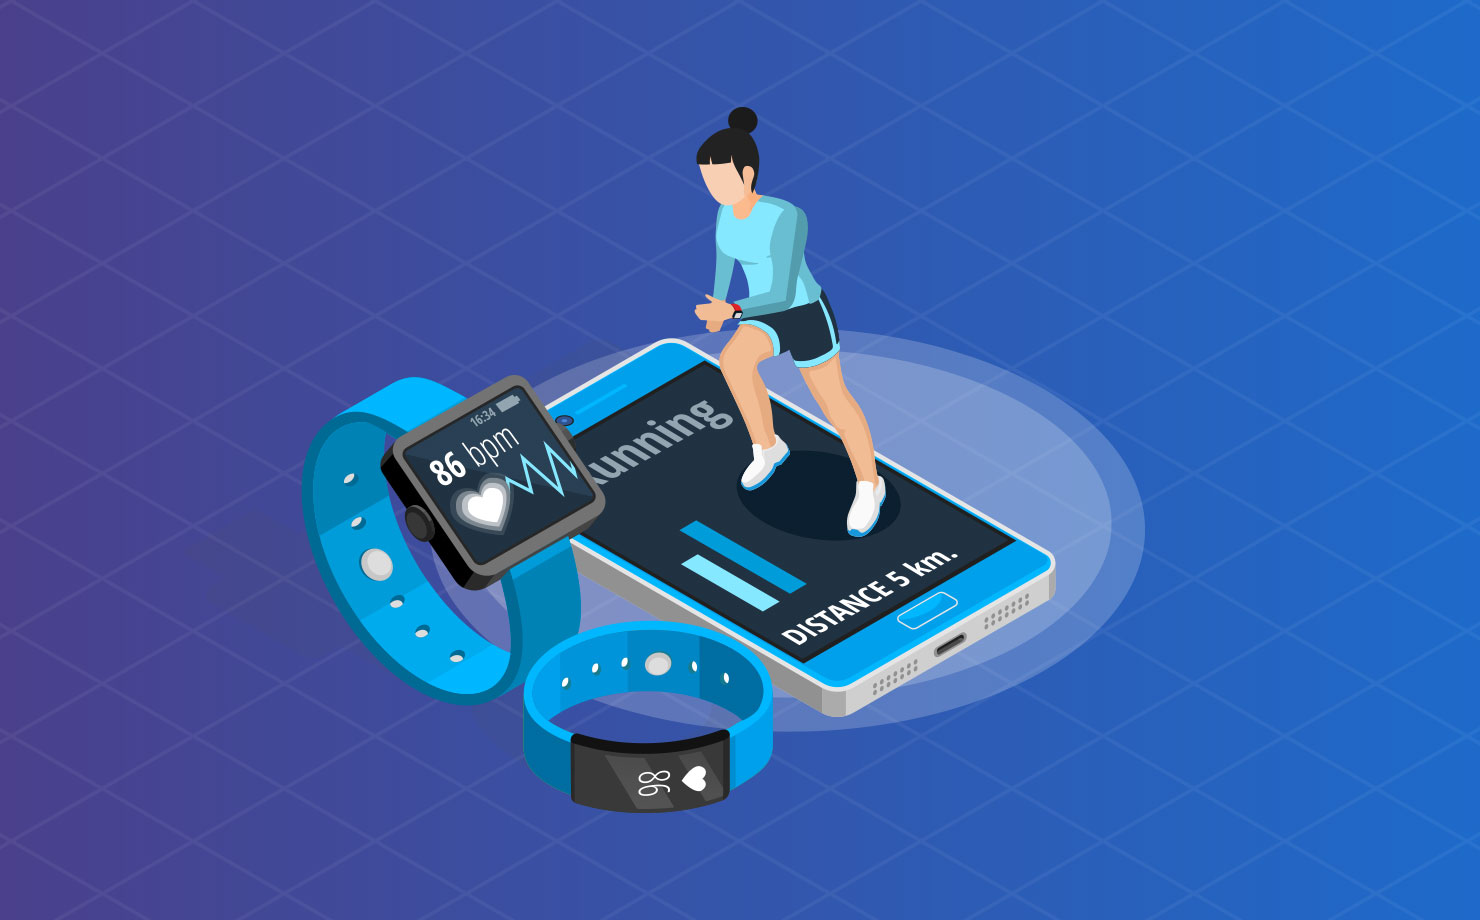 Developing a fitness app